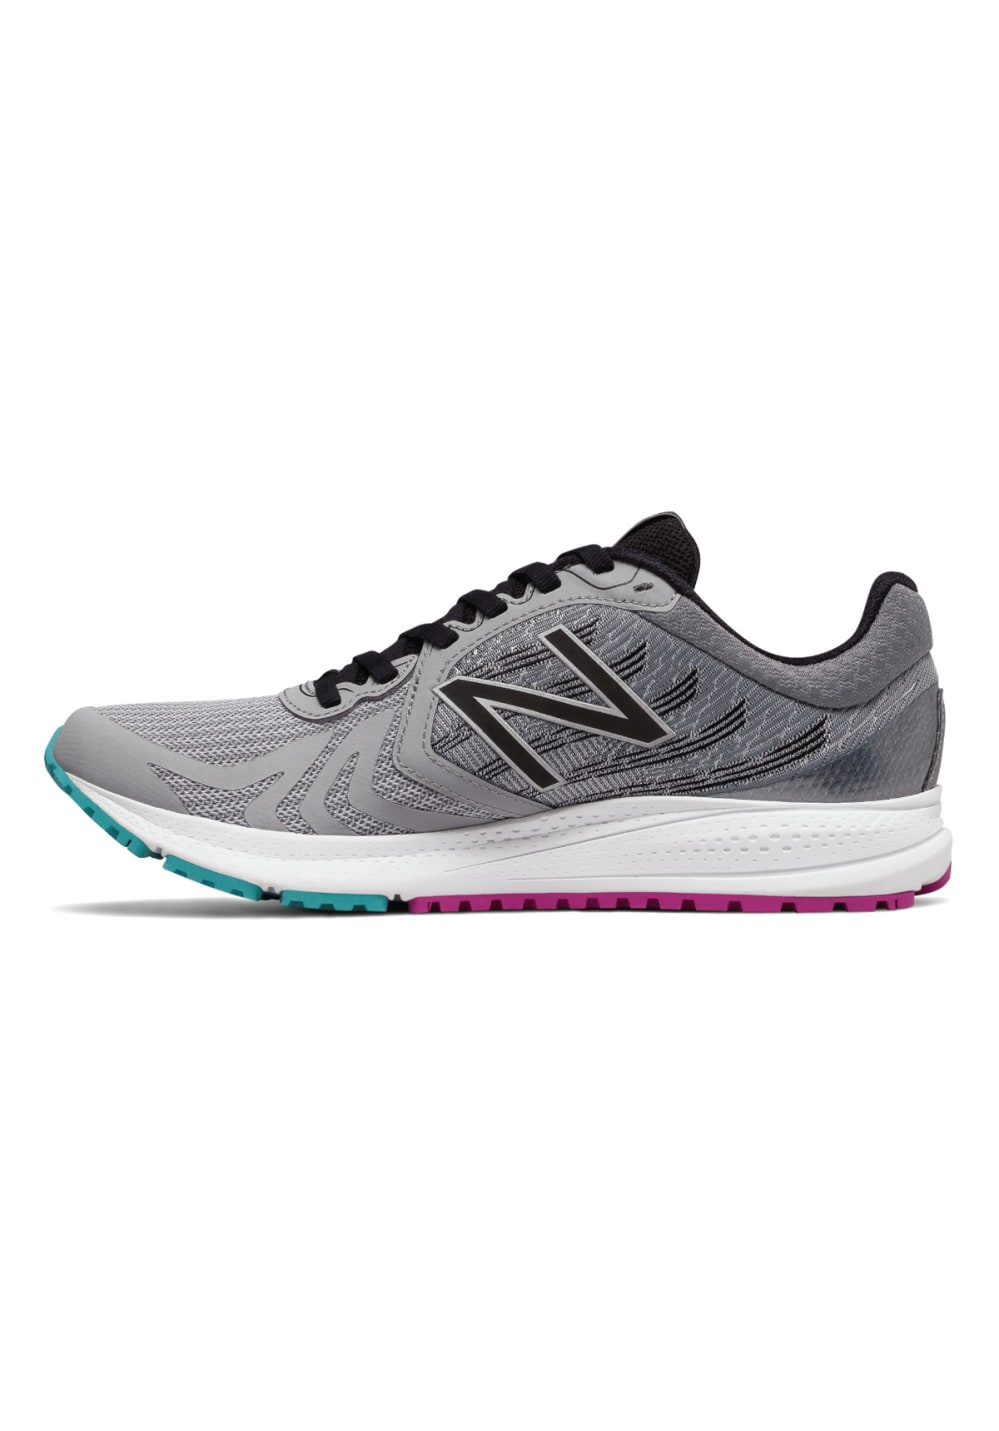 Balance Femme Gris21run Chaussures Pour Running V2 Pace New Vazee CdexBo